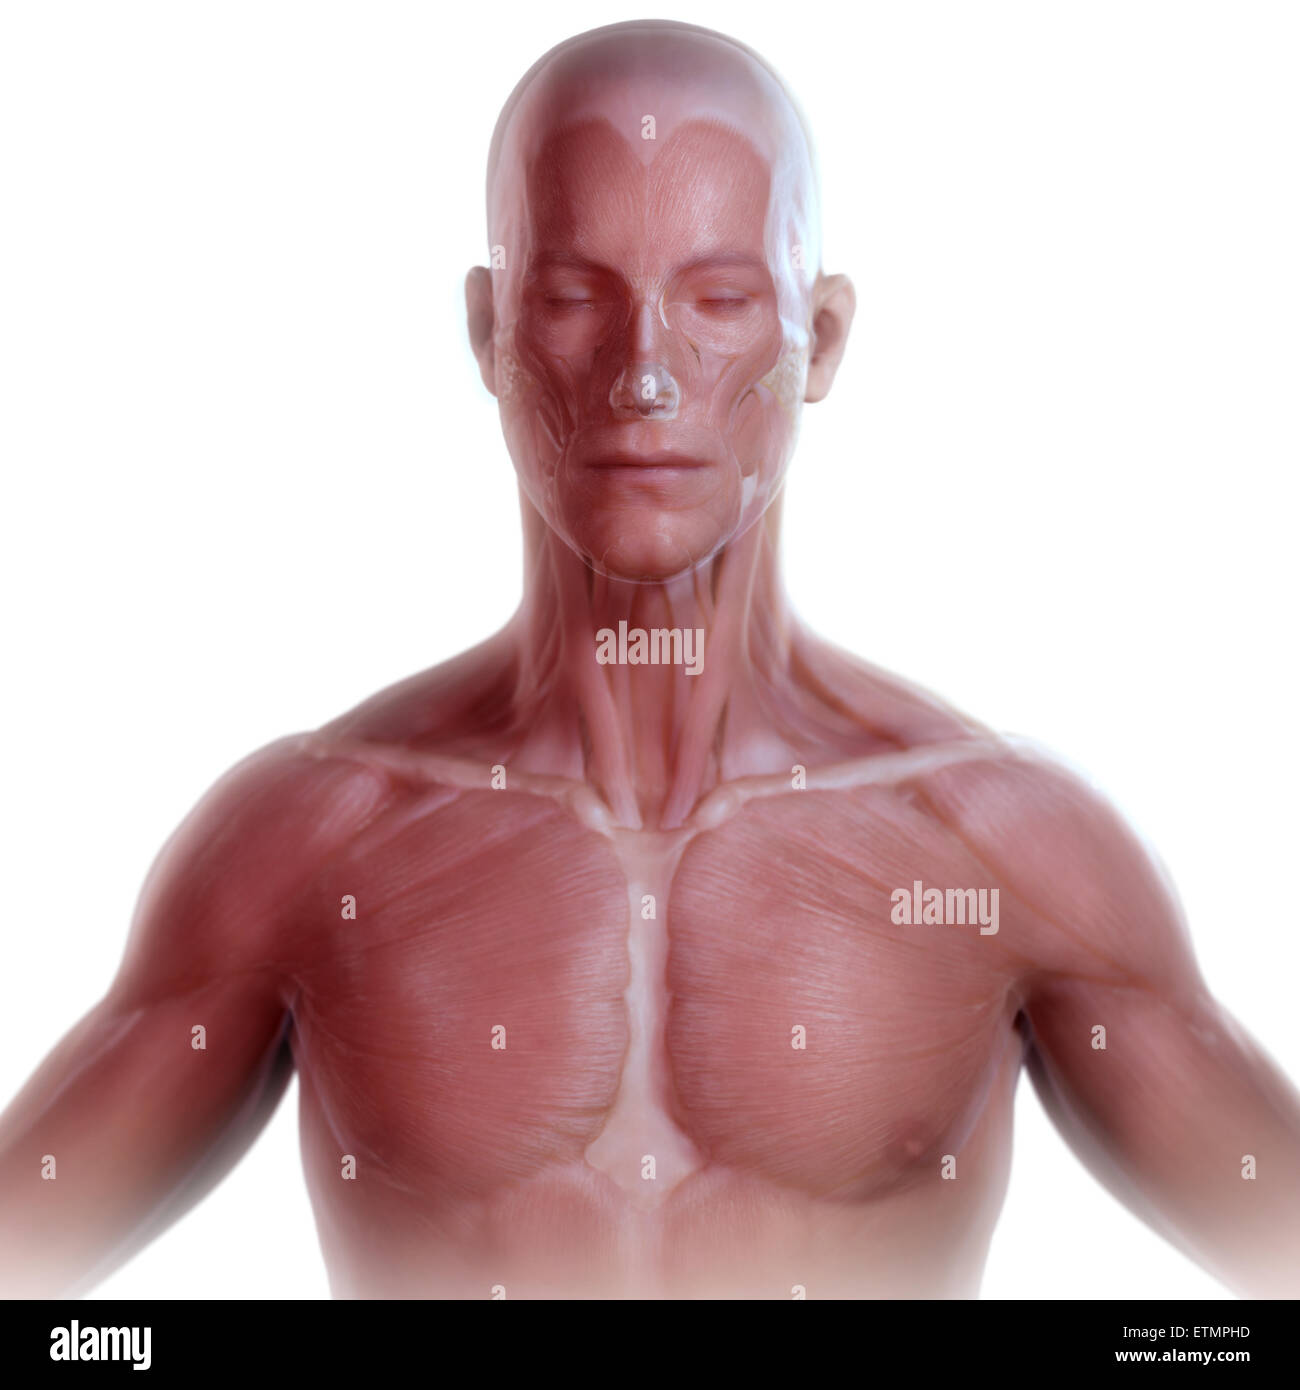 Conceptual image of the face and upper body with the musculature visible under the skin. - Stock Image